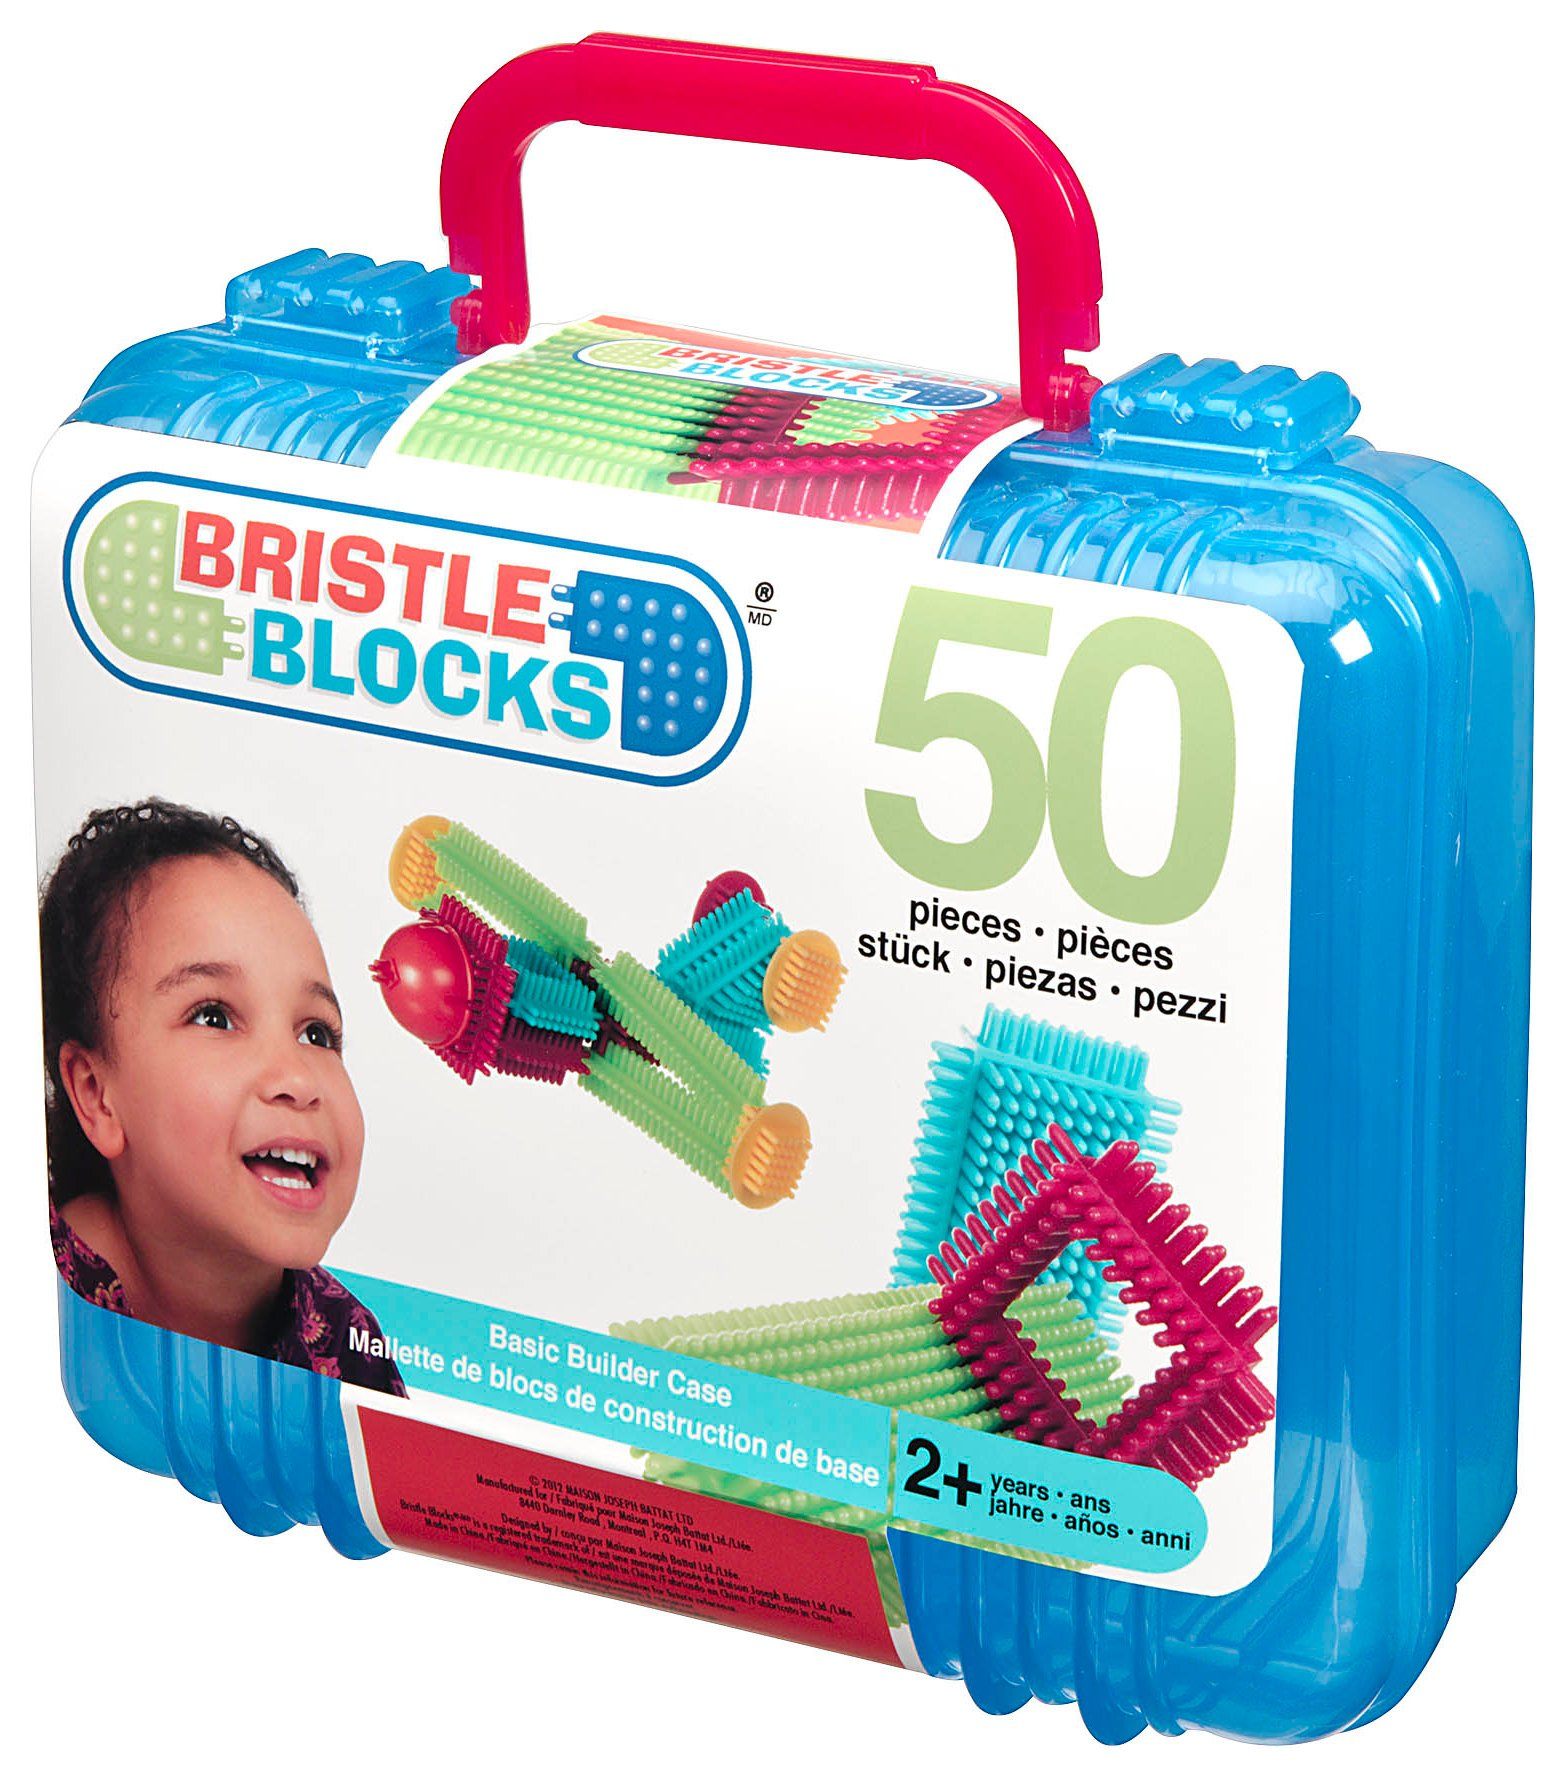 Image of Bristle Blocks Basic Builder Bucket with 50 Pieces.